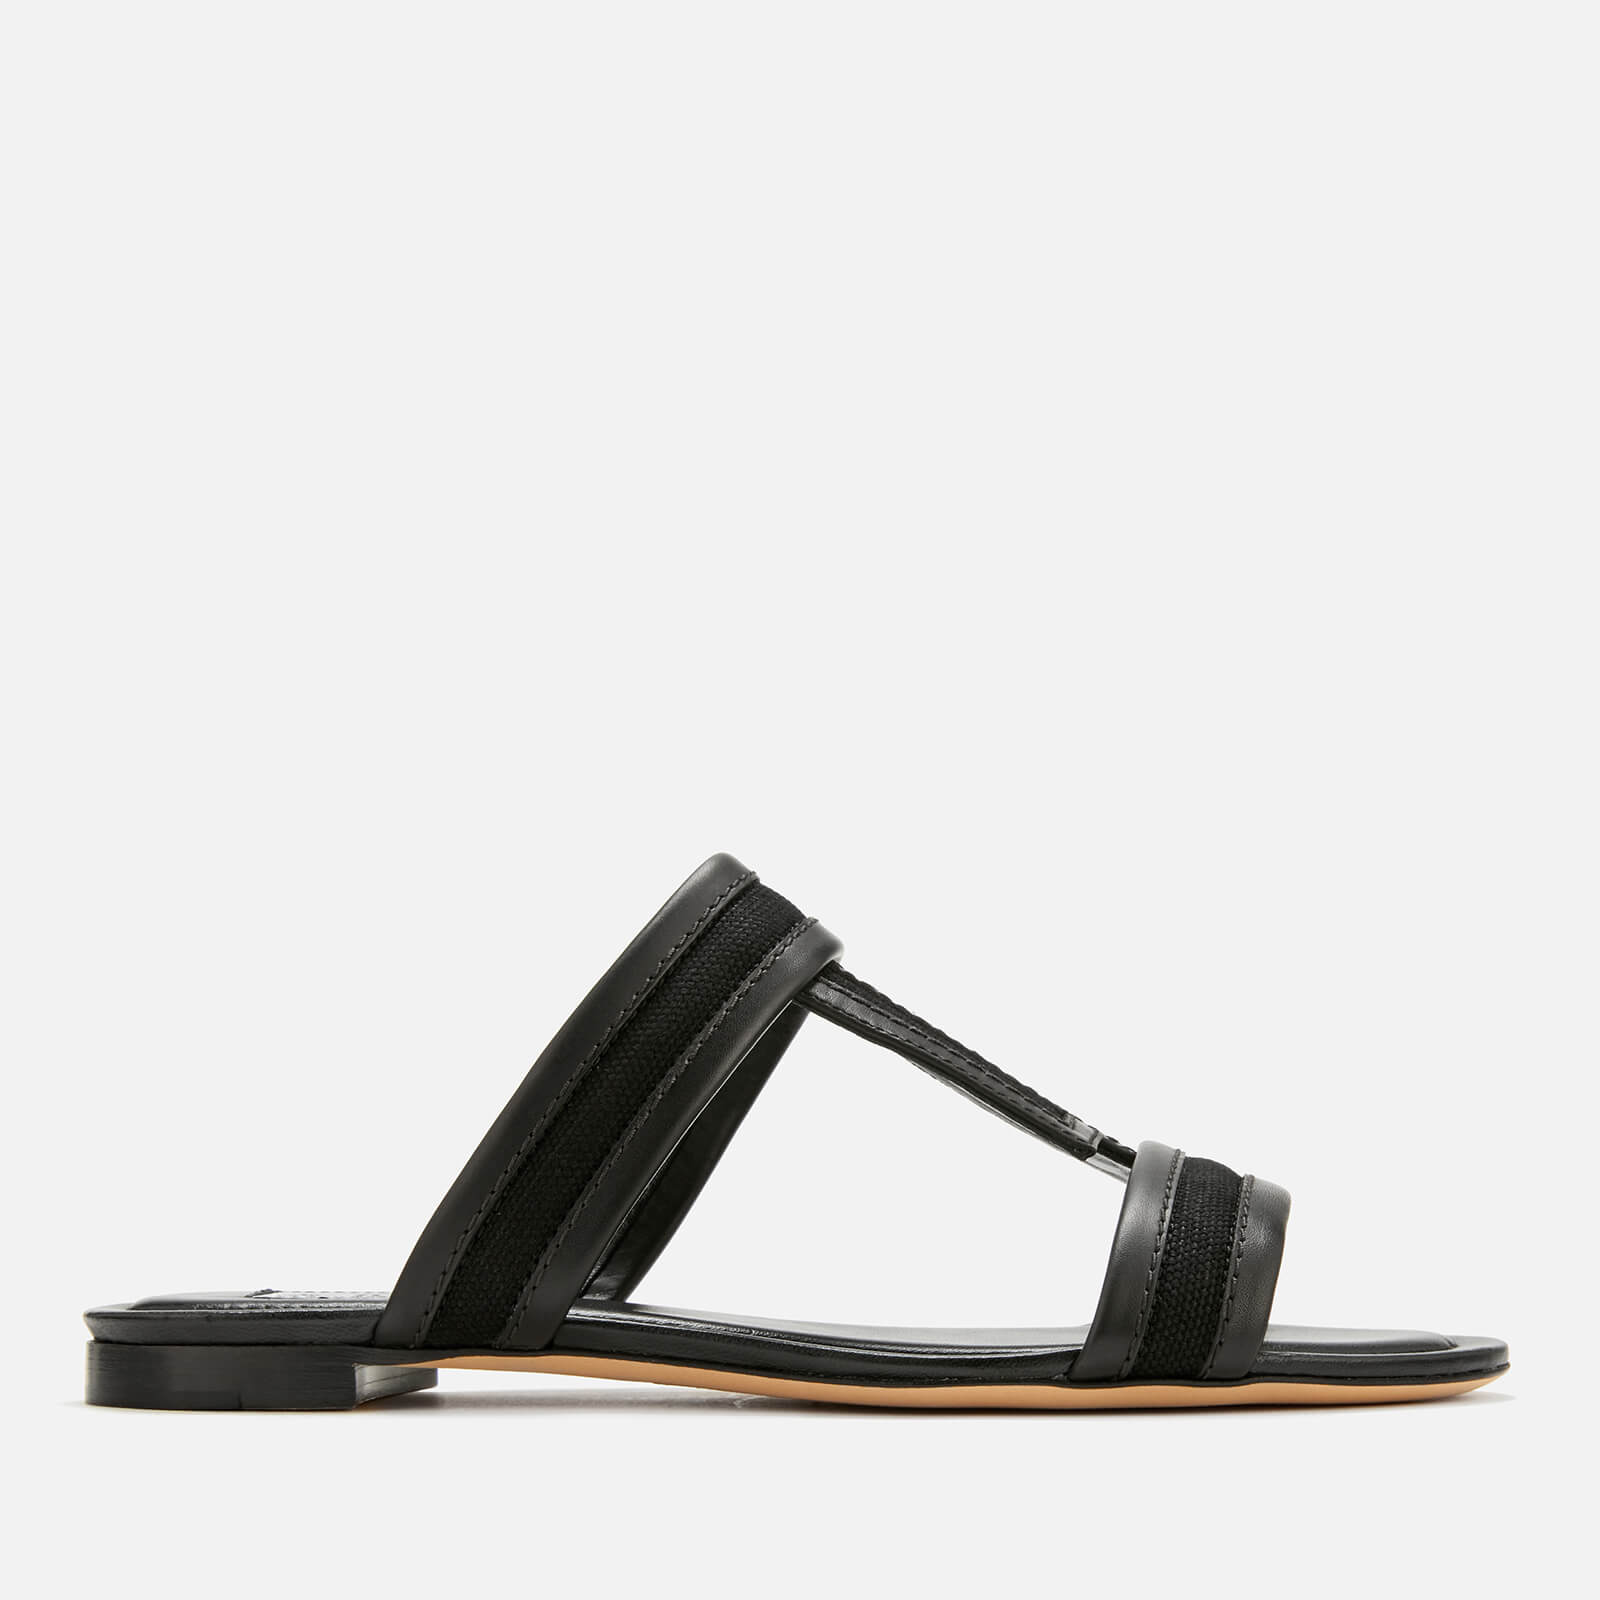 f74dbf8796fb Tod s Women s Mule Flat Sandals - Nero - Free UK Delivery over £50